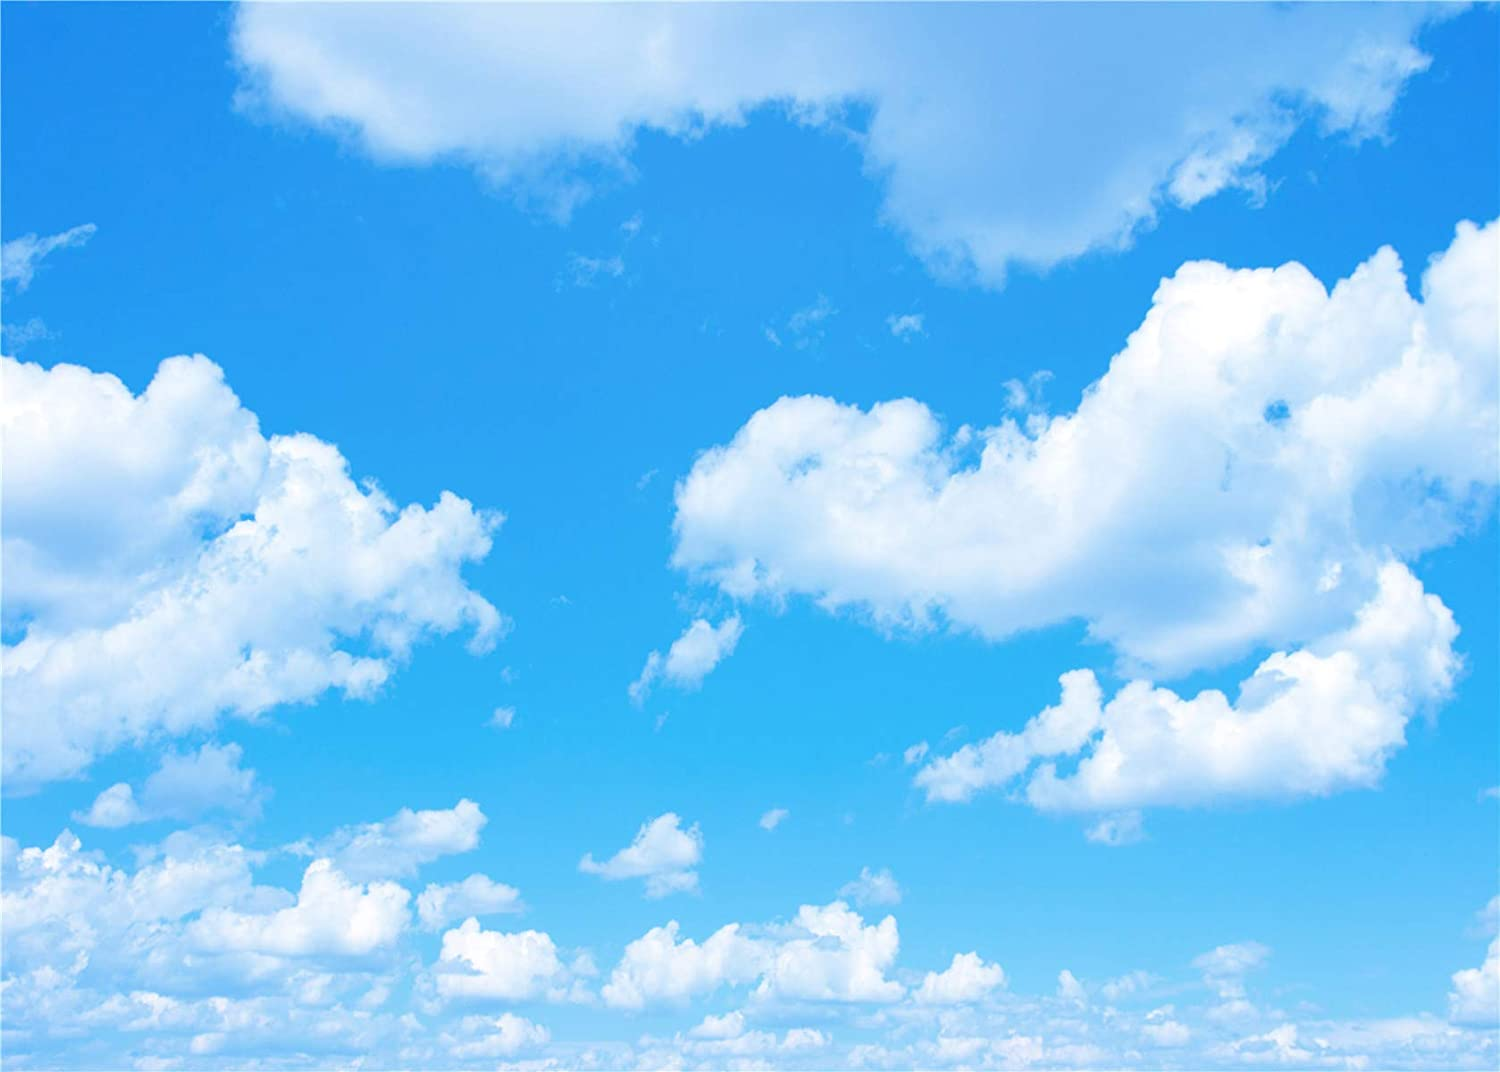 GYA 7x5ft Blue Sky White Clouds Photo Background Sunshine Sky Clouds Theme Photography Backdrop Photo Booth Wedding Party Decoration Background Studio Props Vinyl dn153-7x5FT